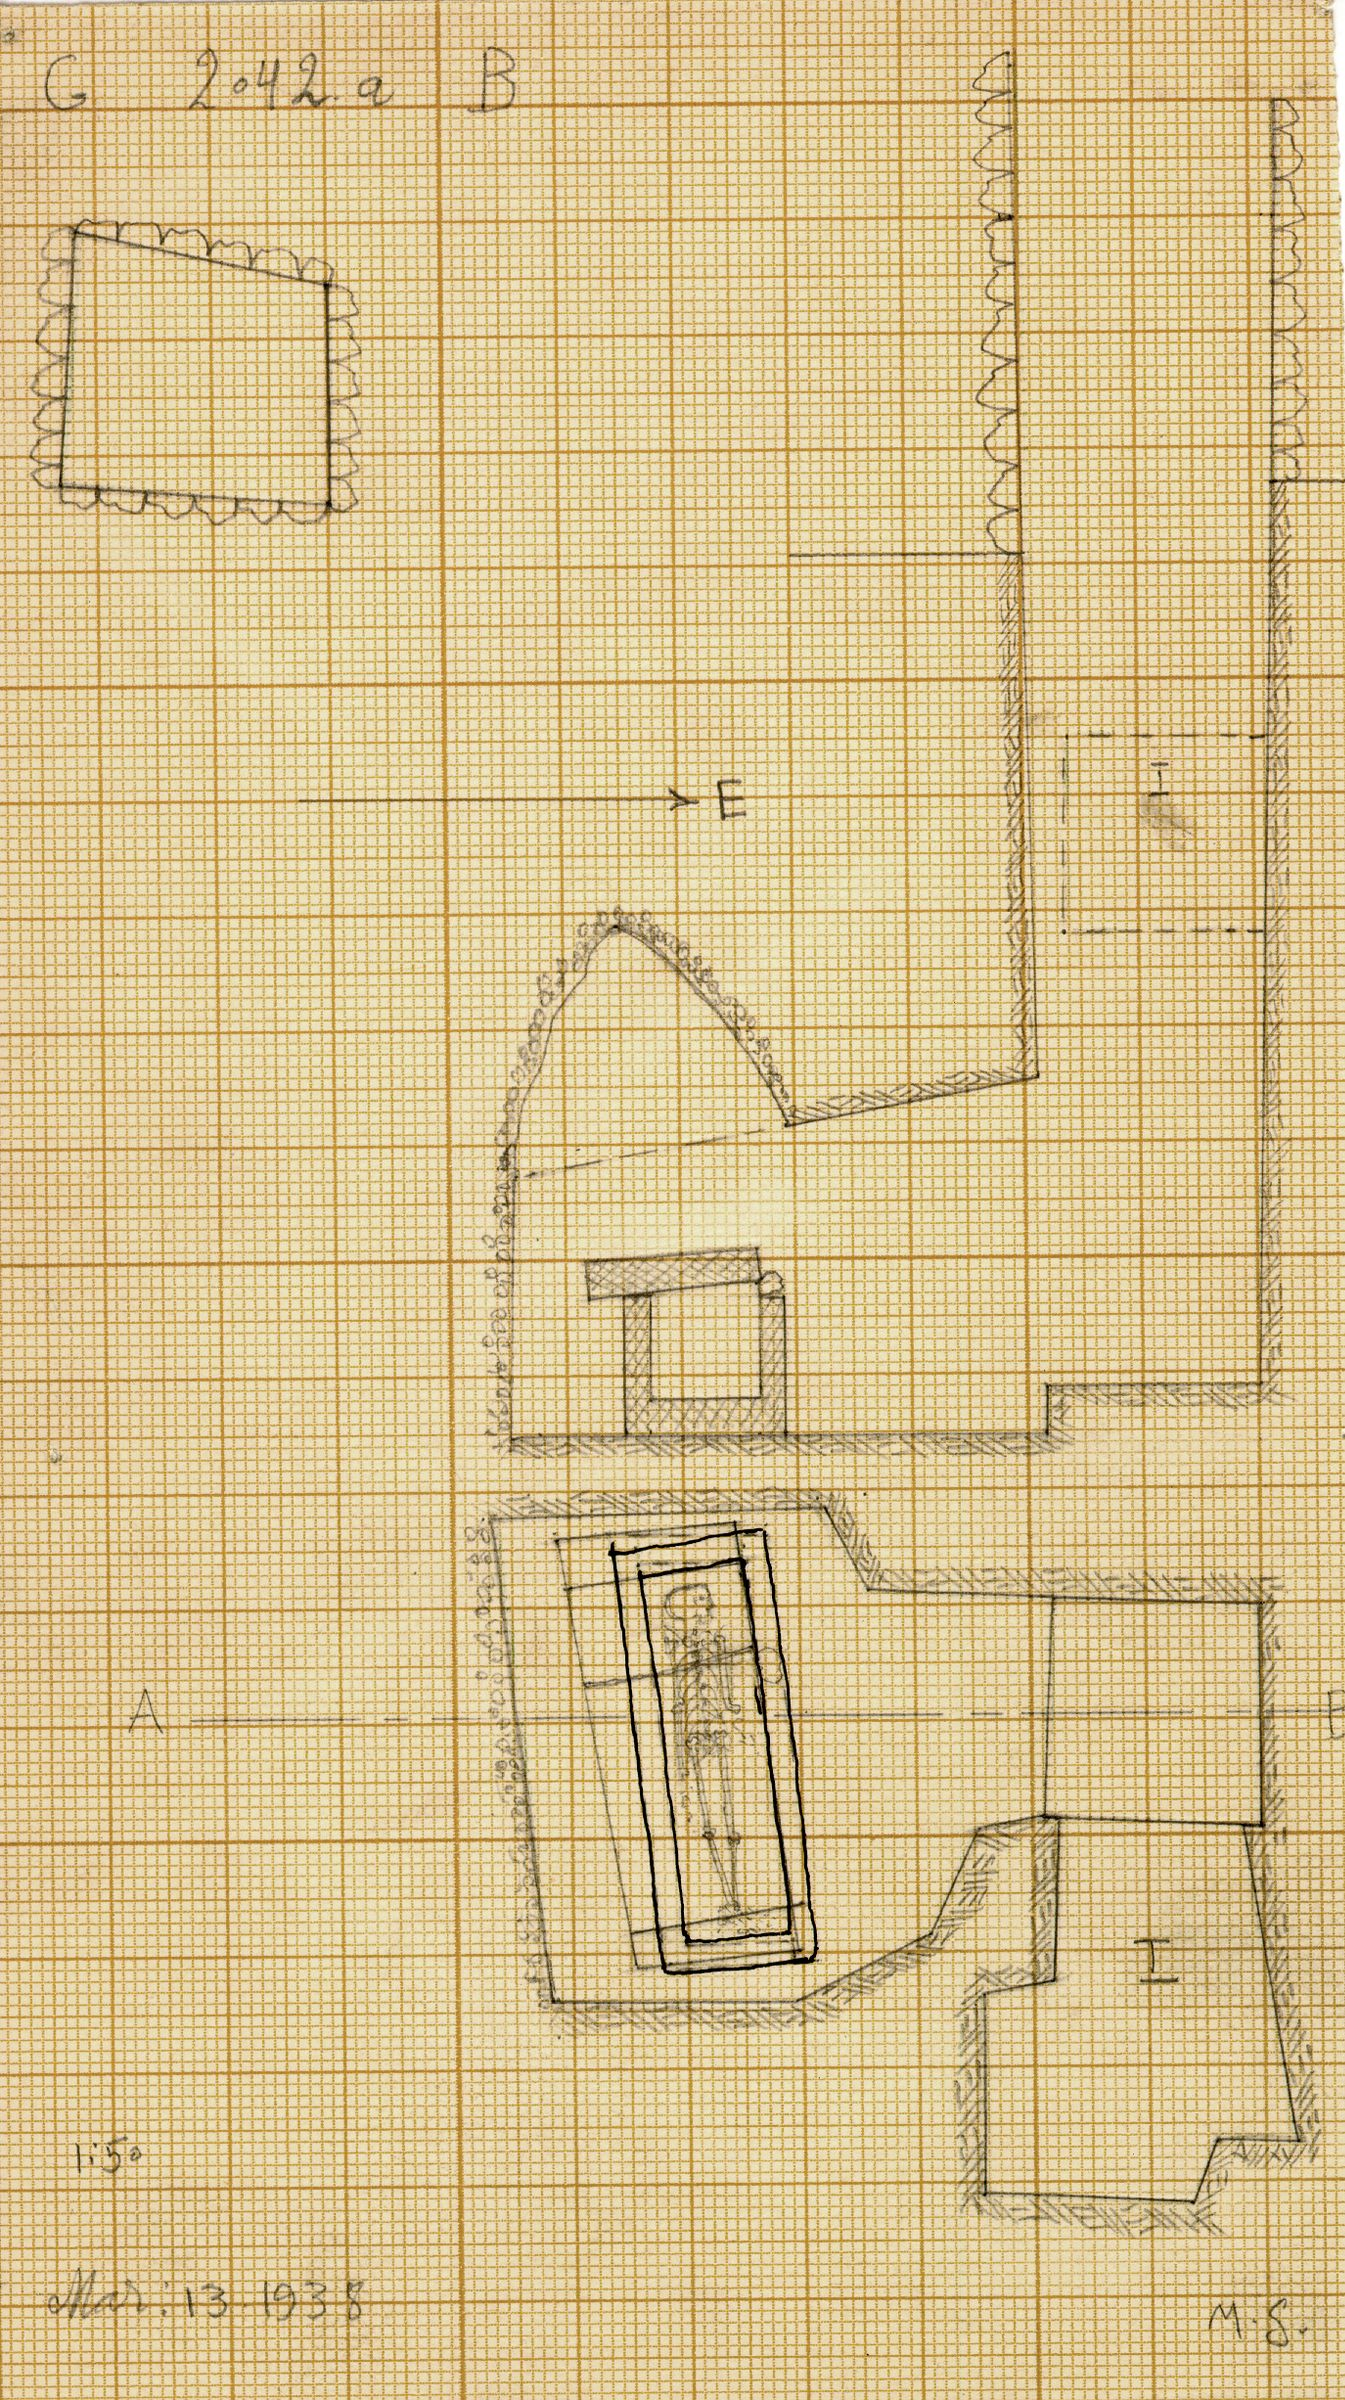 Maps and plans: G 2042a, Shaft B